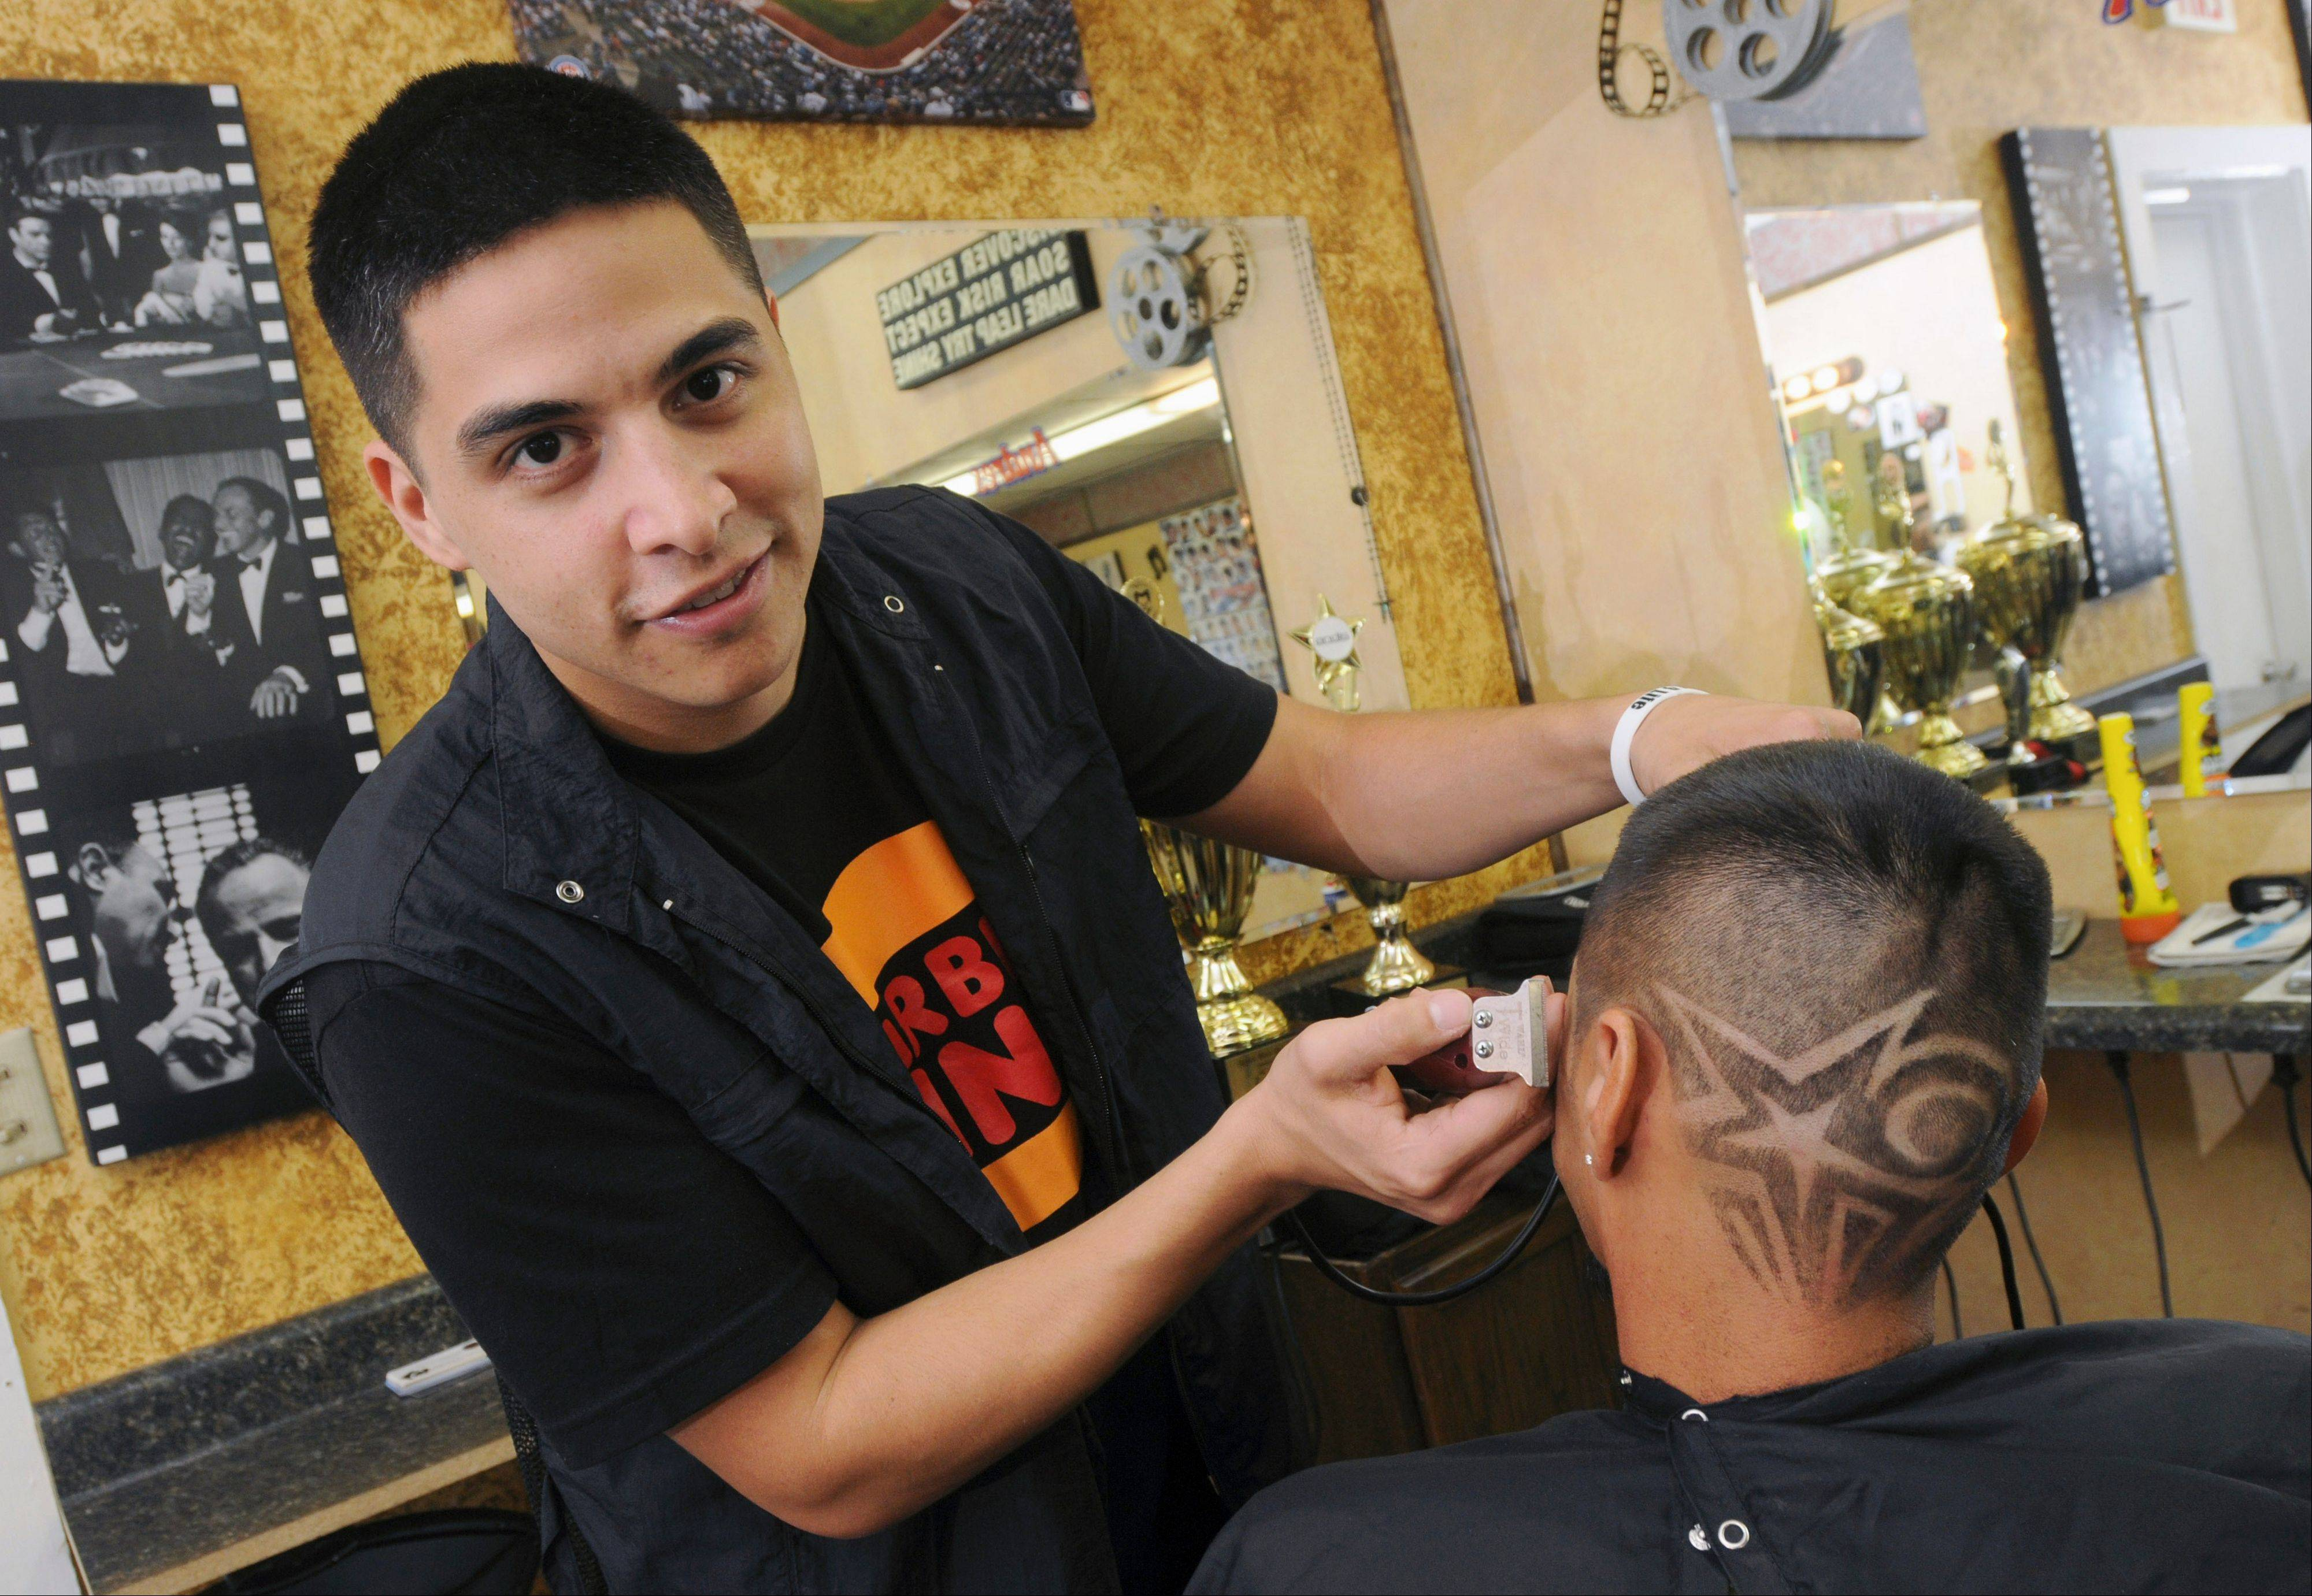 Miguel Rosas, owner of The New Style Barbershop in Moline, works on a customer's hair design. Over the Labor Day weekend, Rosas won first and second-place awards at the Xotics Hair Battle in Columbus, Ohio. He took first place for the fastest fade and second place for a freestyle competition with color where he cropped a design of Yosemite Sam into his subject's skull.